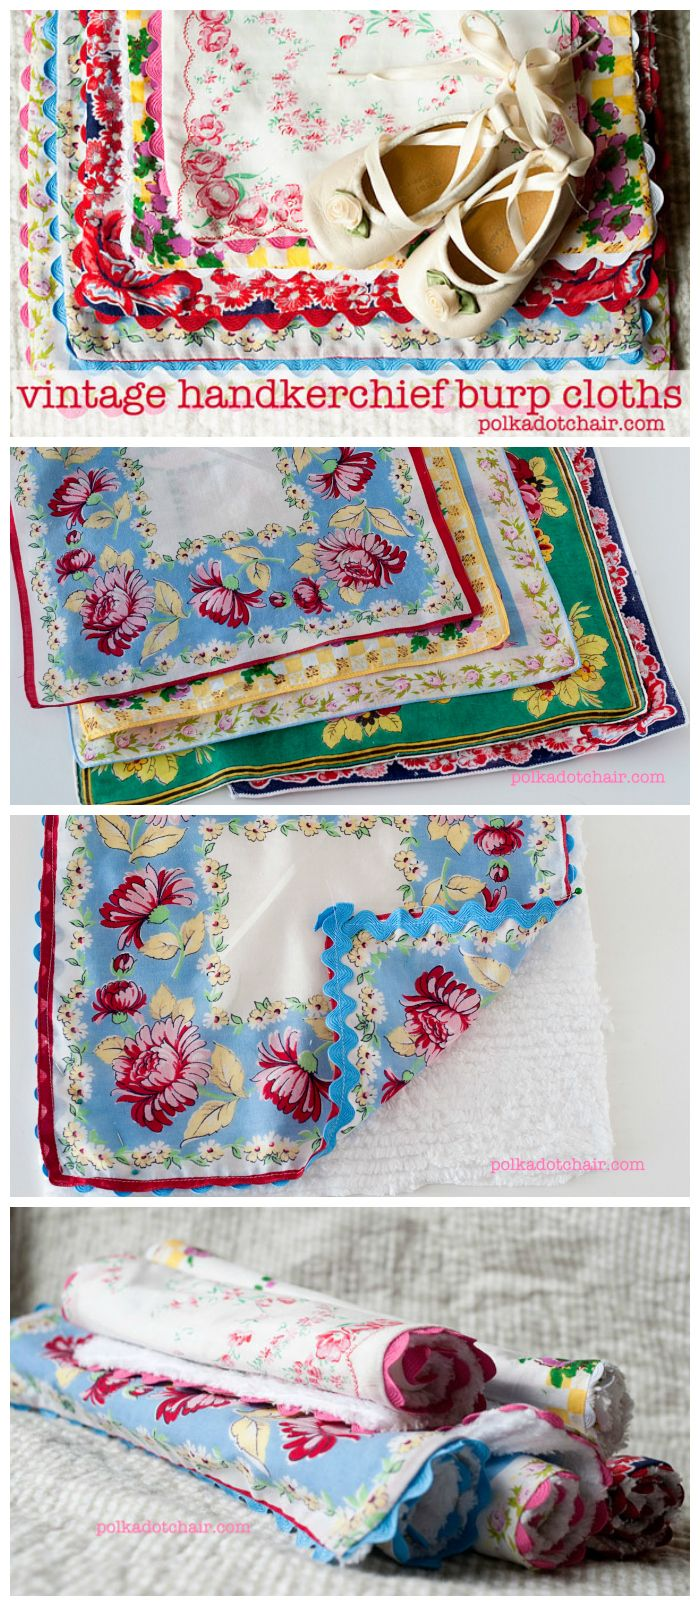 handkerchief crafts ideas best 27 handkerchief craft ideas images on diy 2144